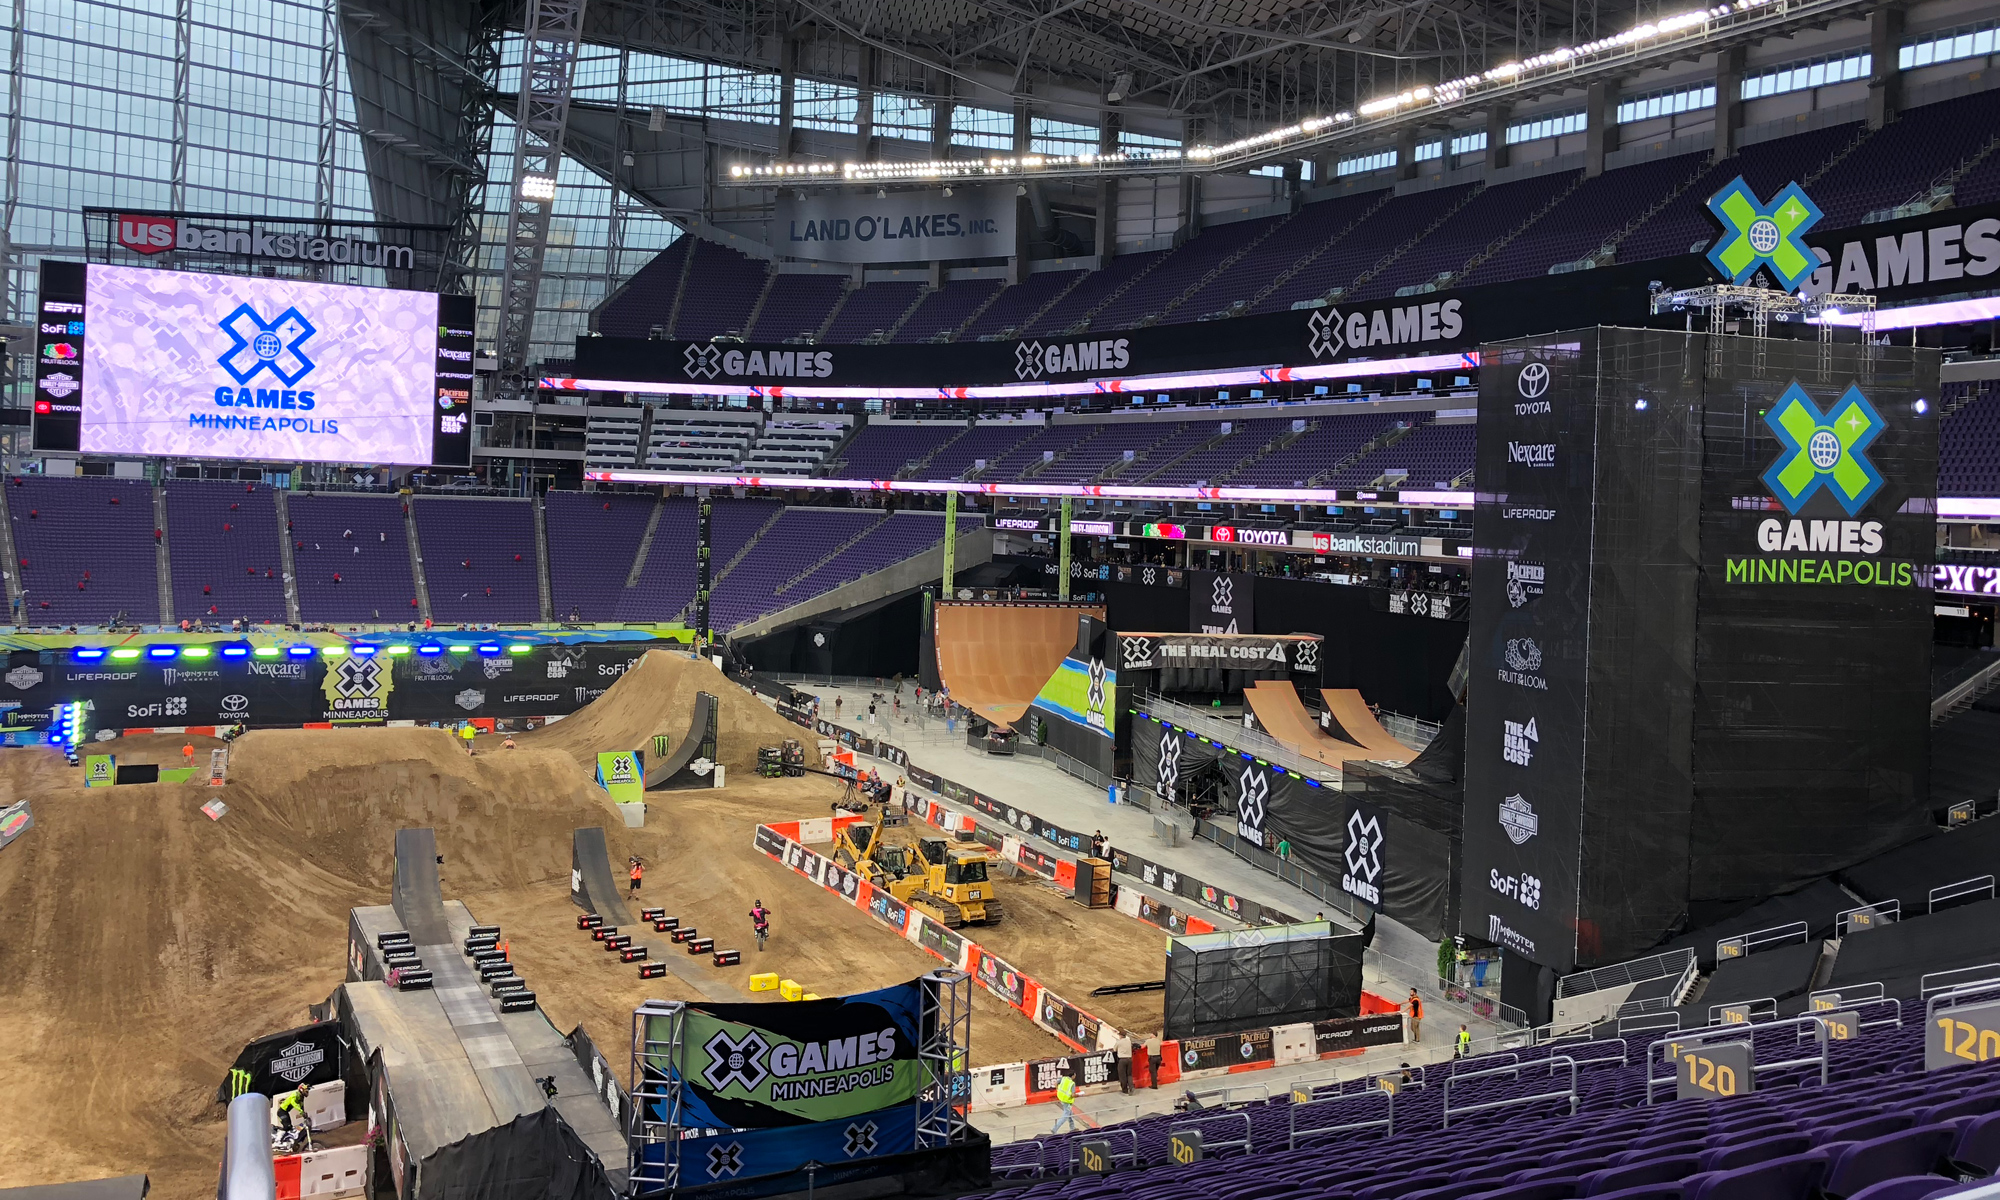 Live From X Games Minneapolis Espn Echo Entertainment Take Viewer Deeper Into The Action